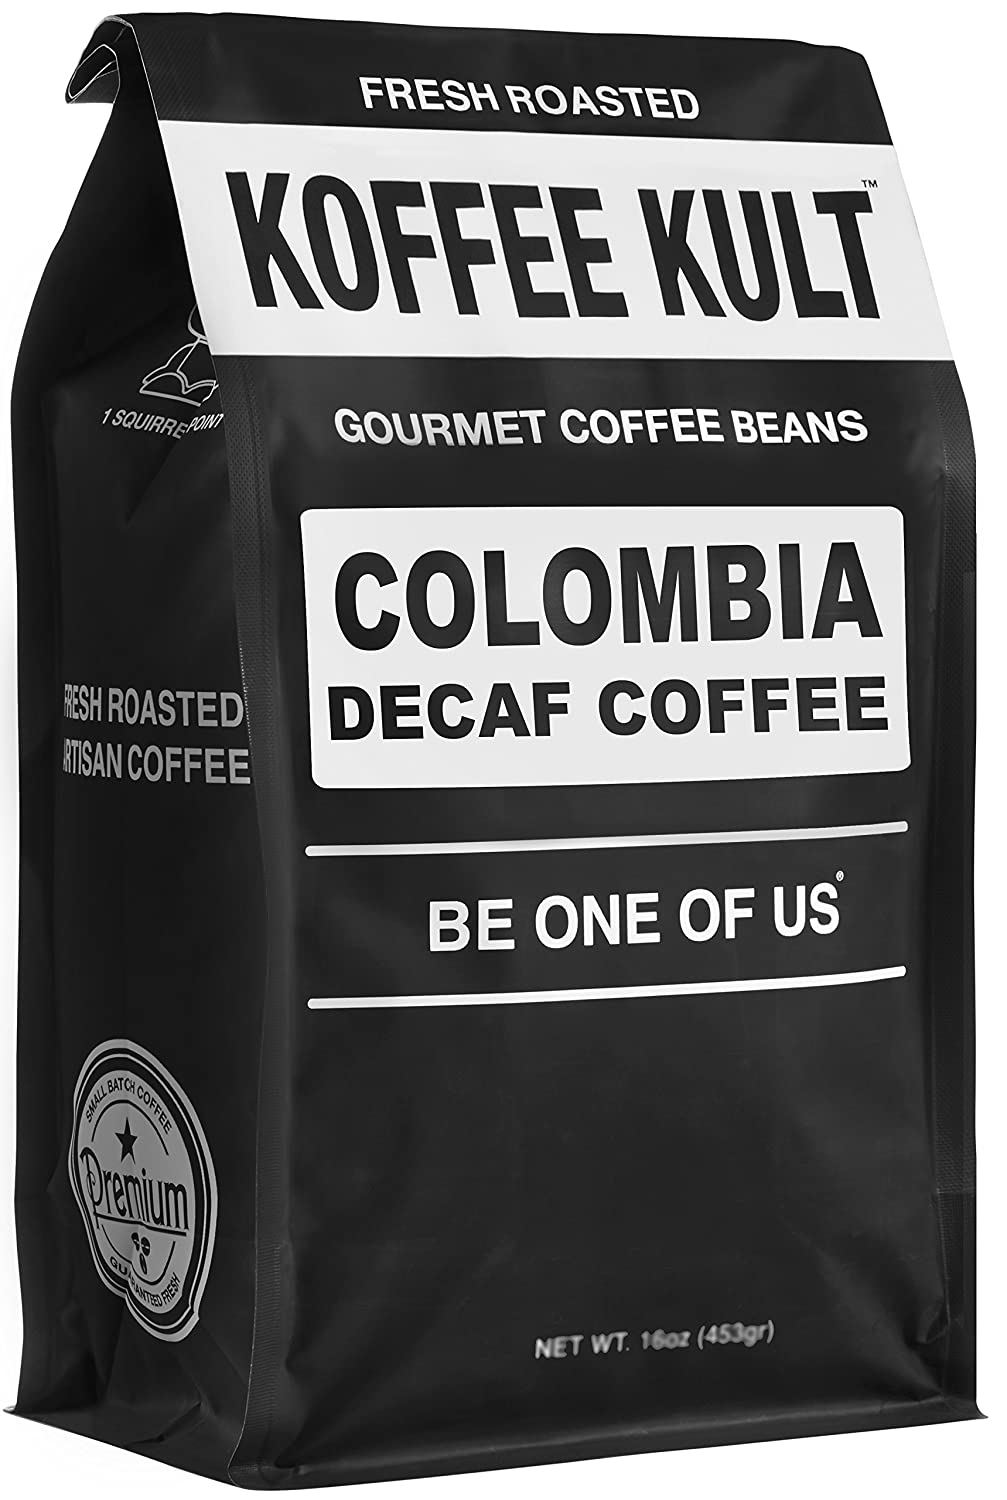 Koffee Kult Colombian Decaf